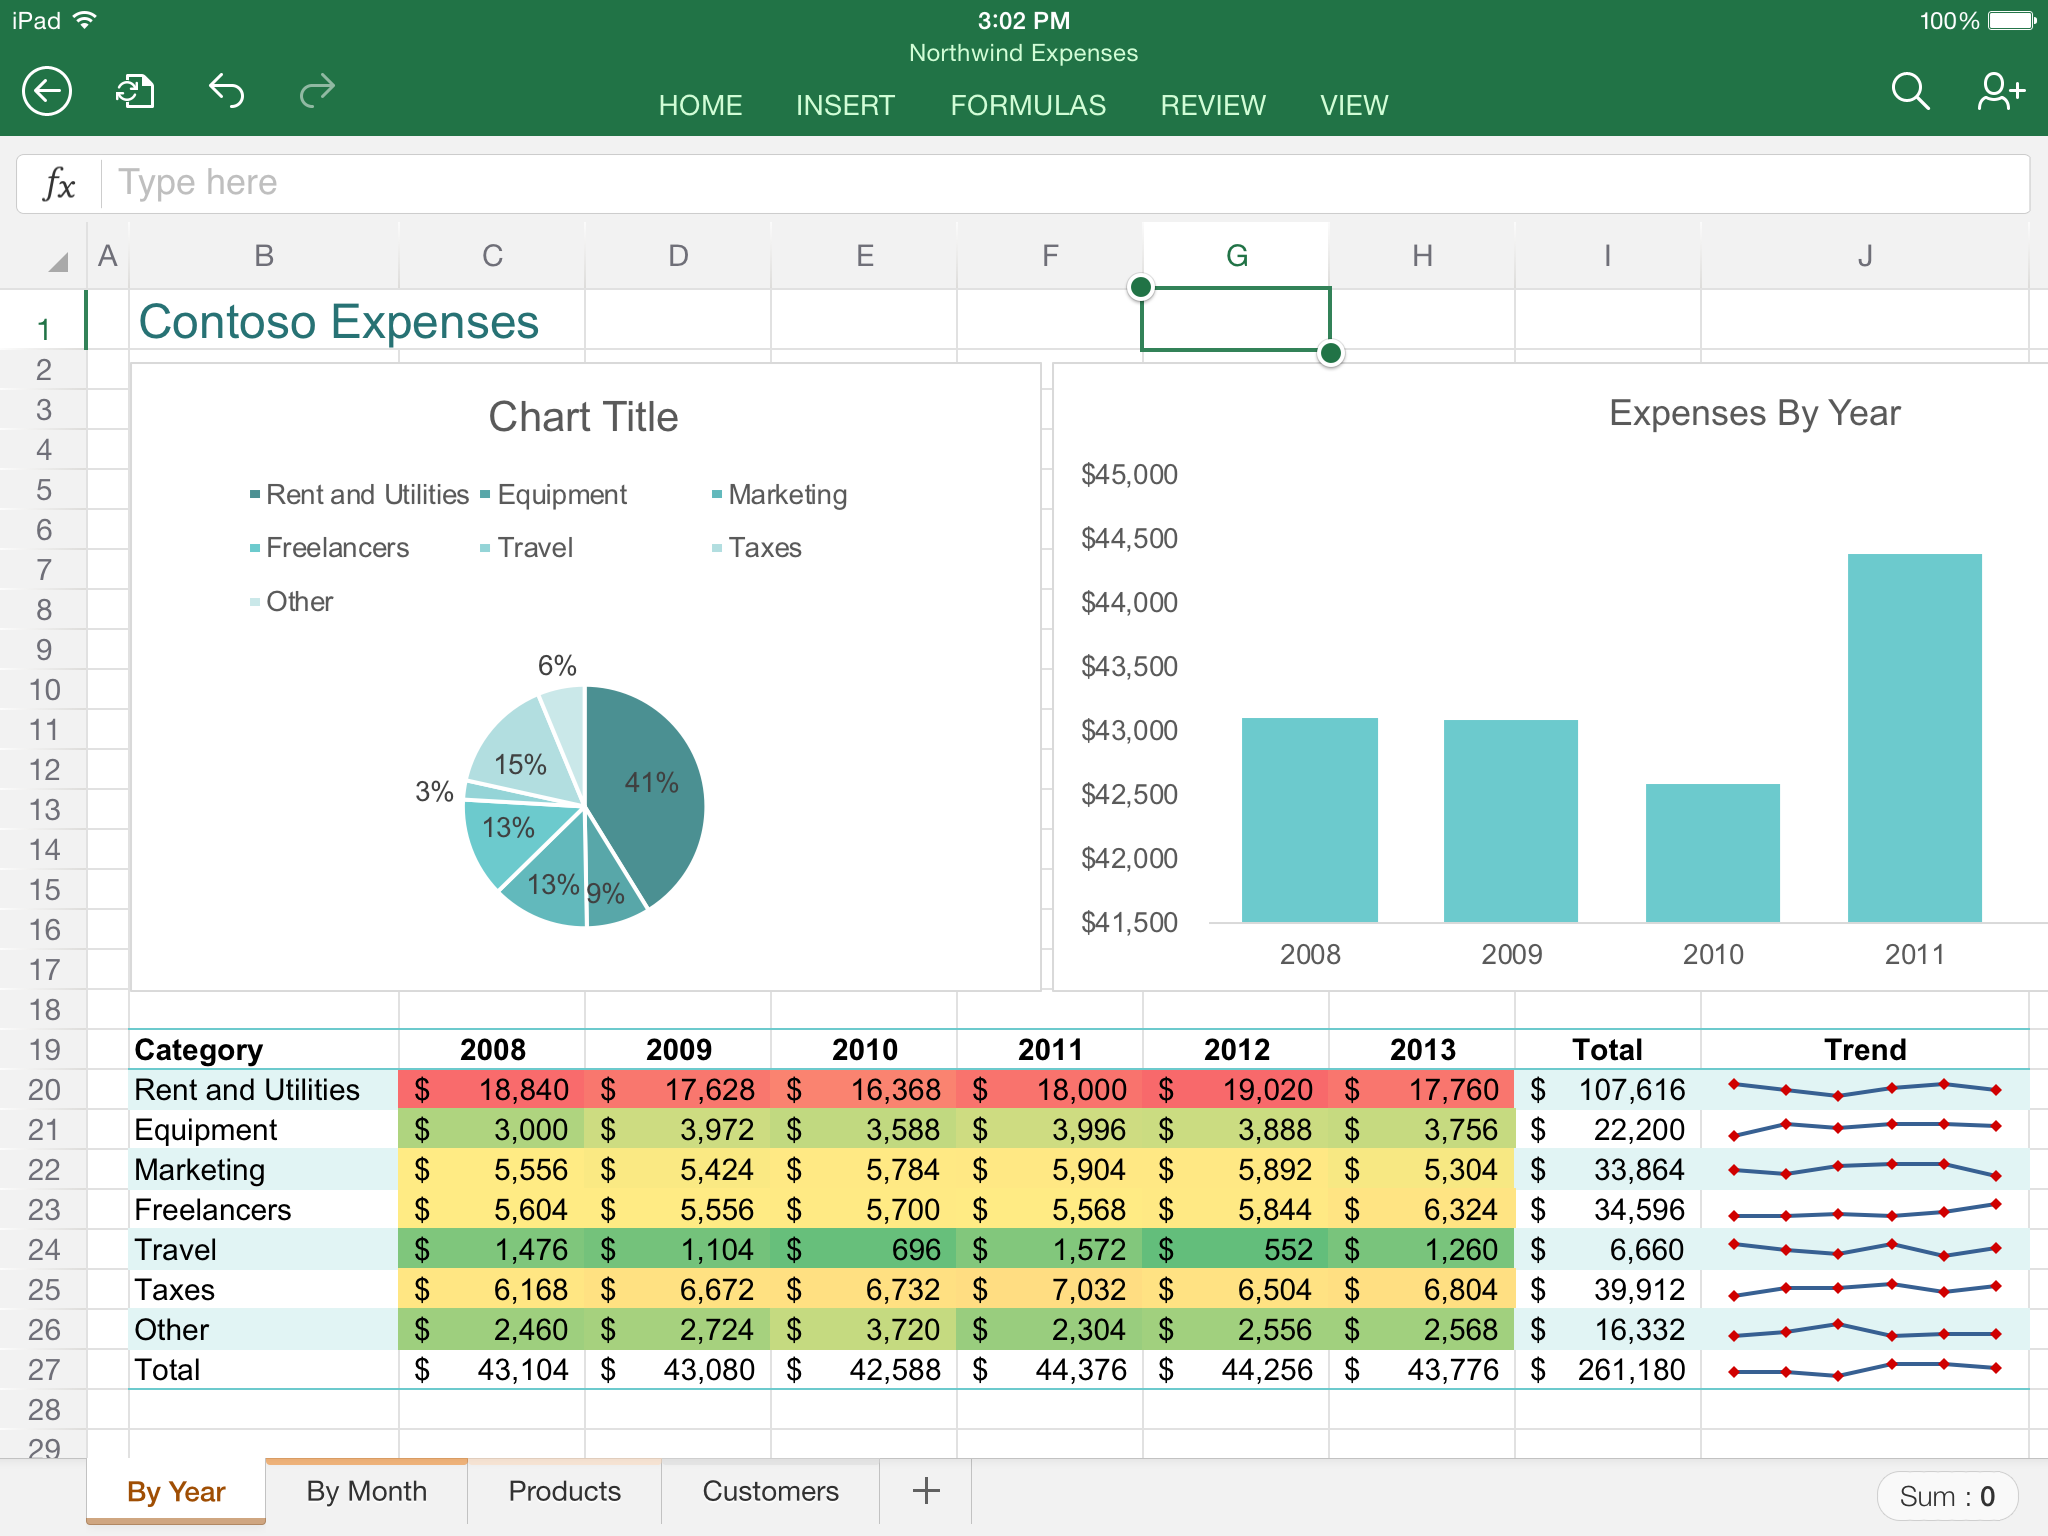 Ediblewildsus  Marvelous App Highlight Excel  Mobile Digital Now With Entrancing Excel In Action With Alluring Access Vba Import Excel Also Sample Project Plan Excel In Addition Excel Table Format And Quartile Function In Excel As Well As Vba Programming In Excel Additionally Excel Naming Cells From Youstonybrookedu With Ediblewildsus  Entrancing App Highlight Excel  Mobile Digital Now With Alluring Excel In Action And Marvelous Access Vba Import Excel Also Sample Project Plan Excel In Addition Excel Table Format From Youstonybrookedu